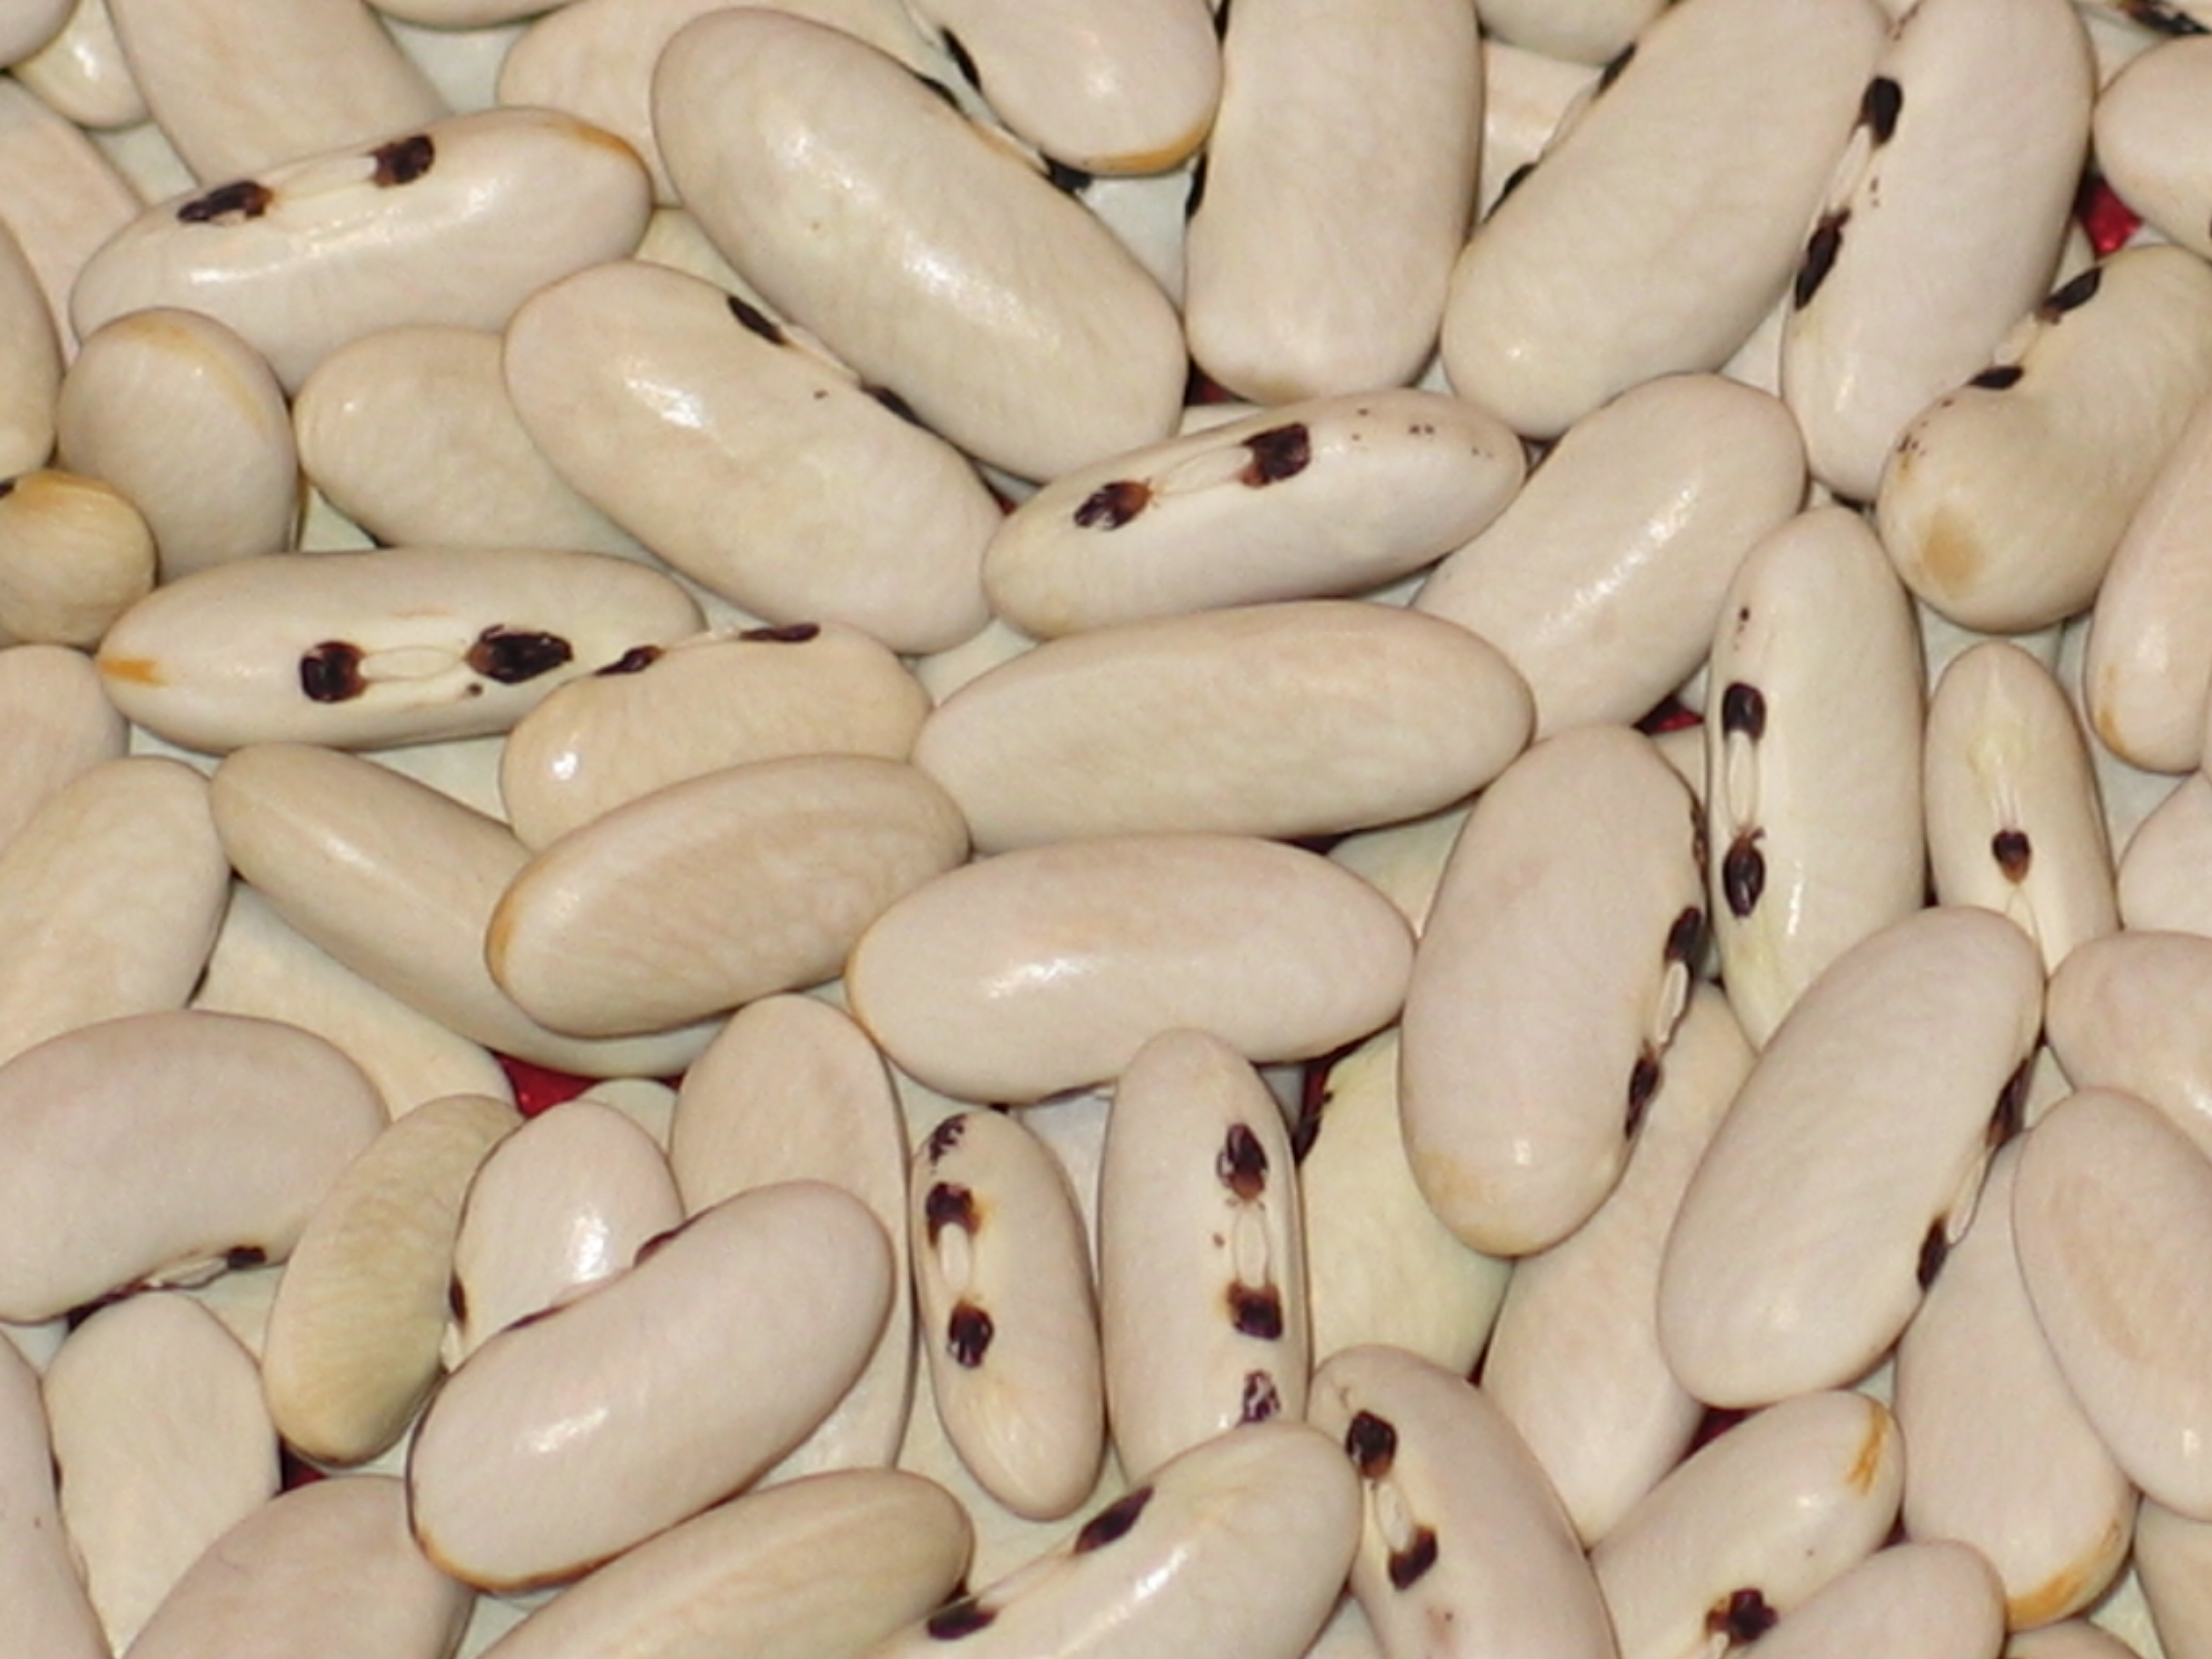 image of Mulldoon beans